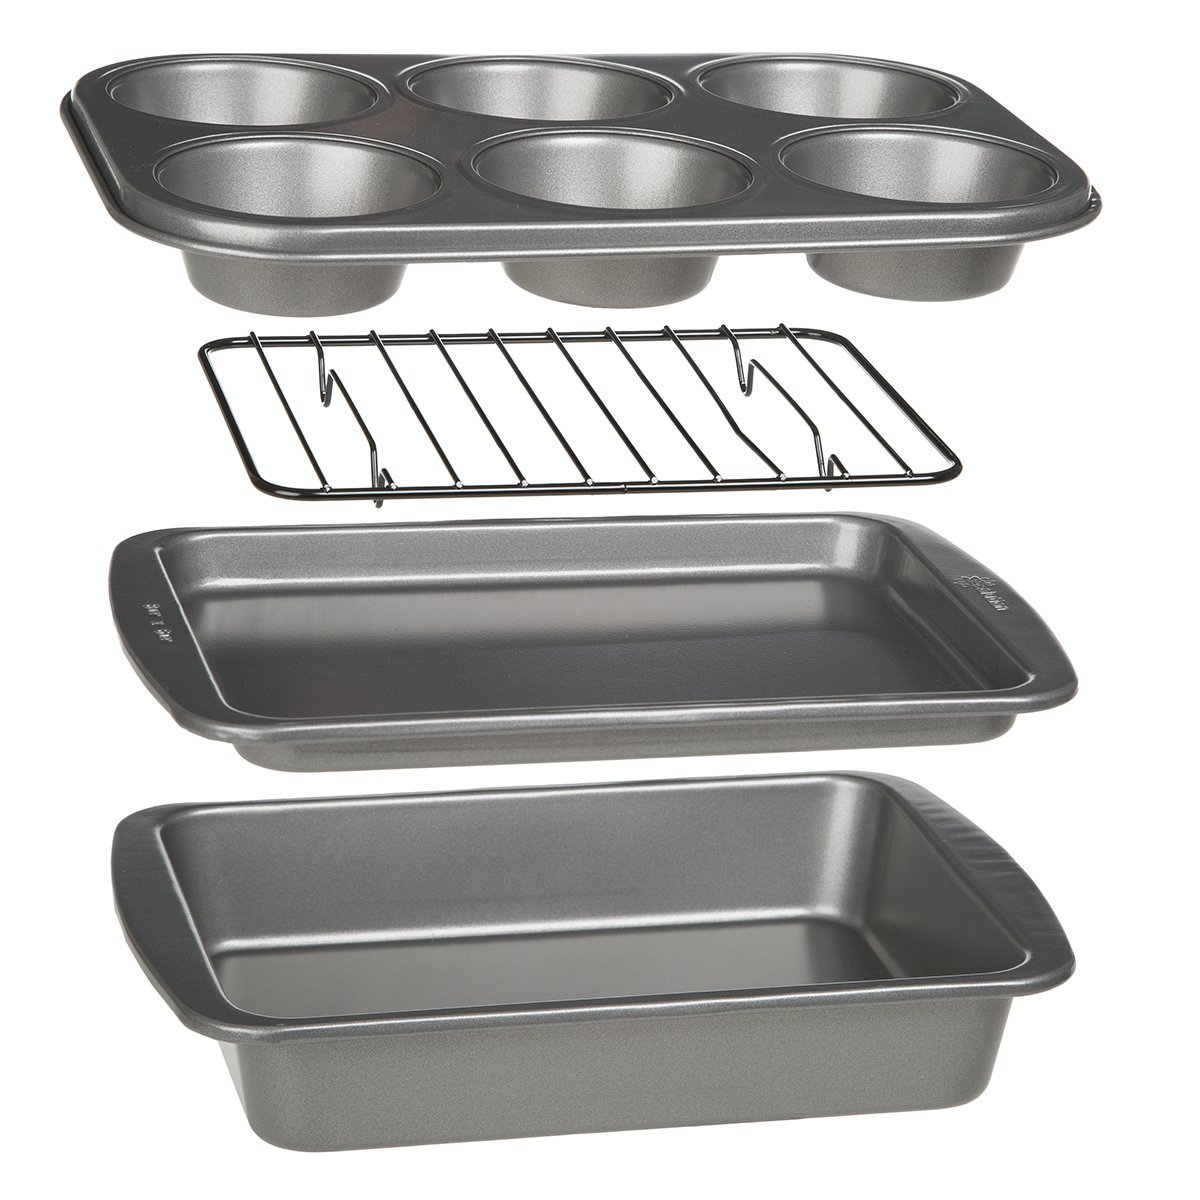 Ecolution Toaster Oven Bakeware 4-Piece Set | Nonstick Heavy Duty Carbon Steel EIOGY-1204